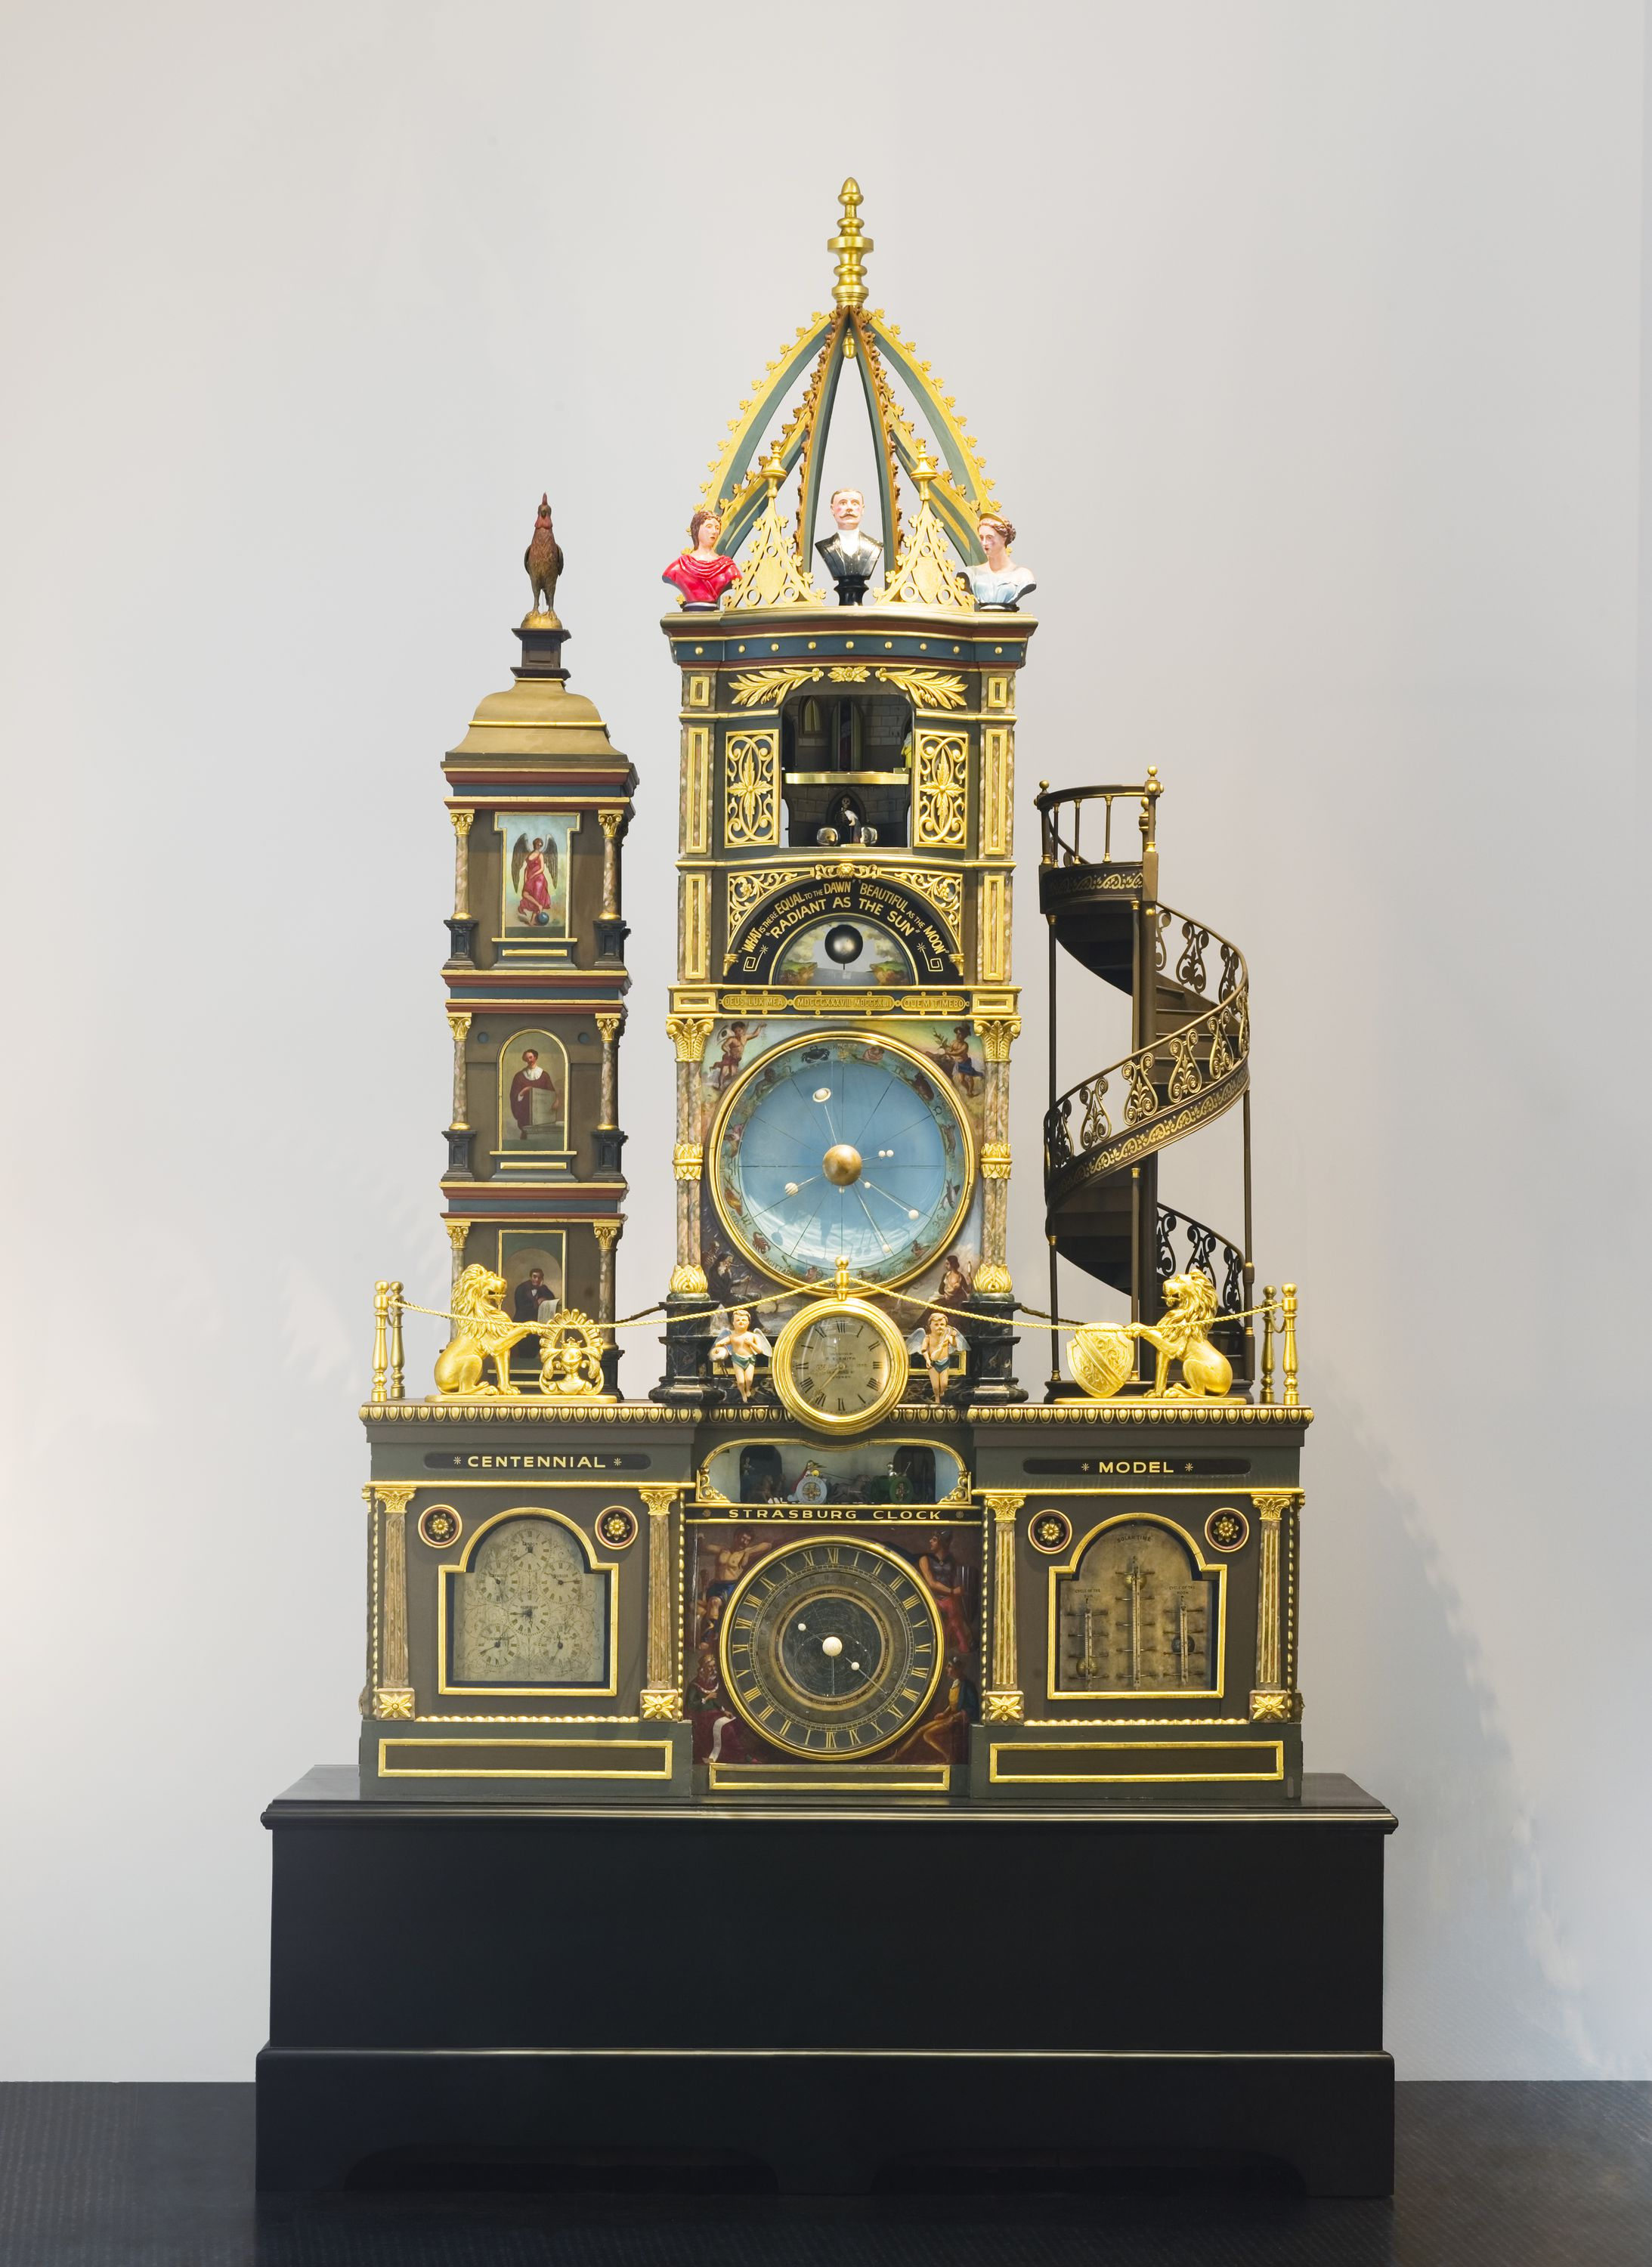 Image of the Strasburg Clock model, featuring a large numbered clock face, golden lions, angelic figures, and planetary bodies.